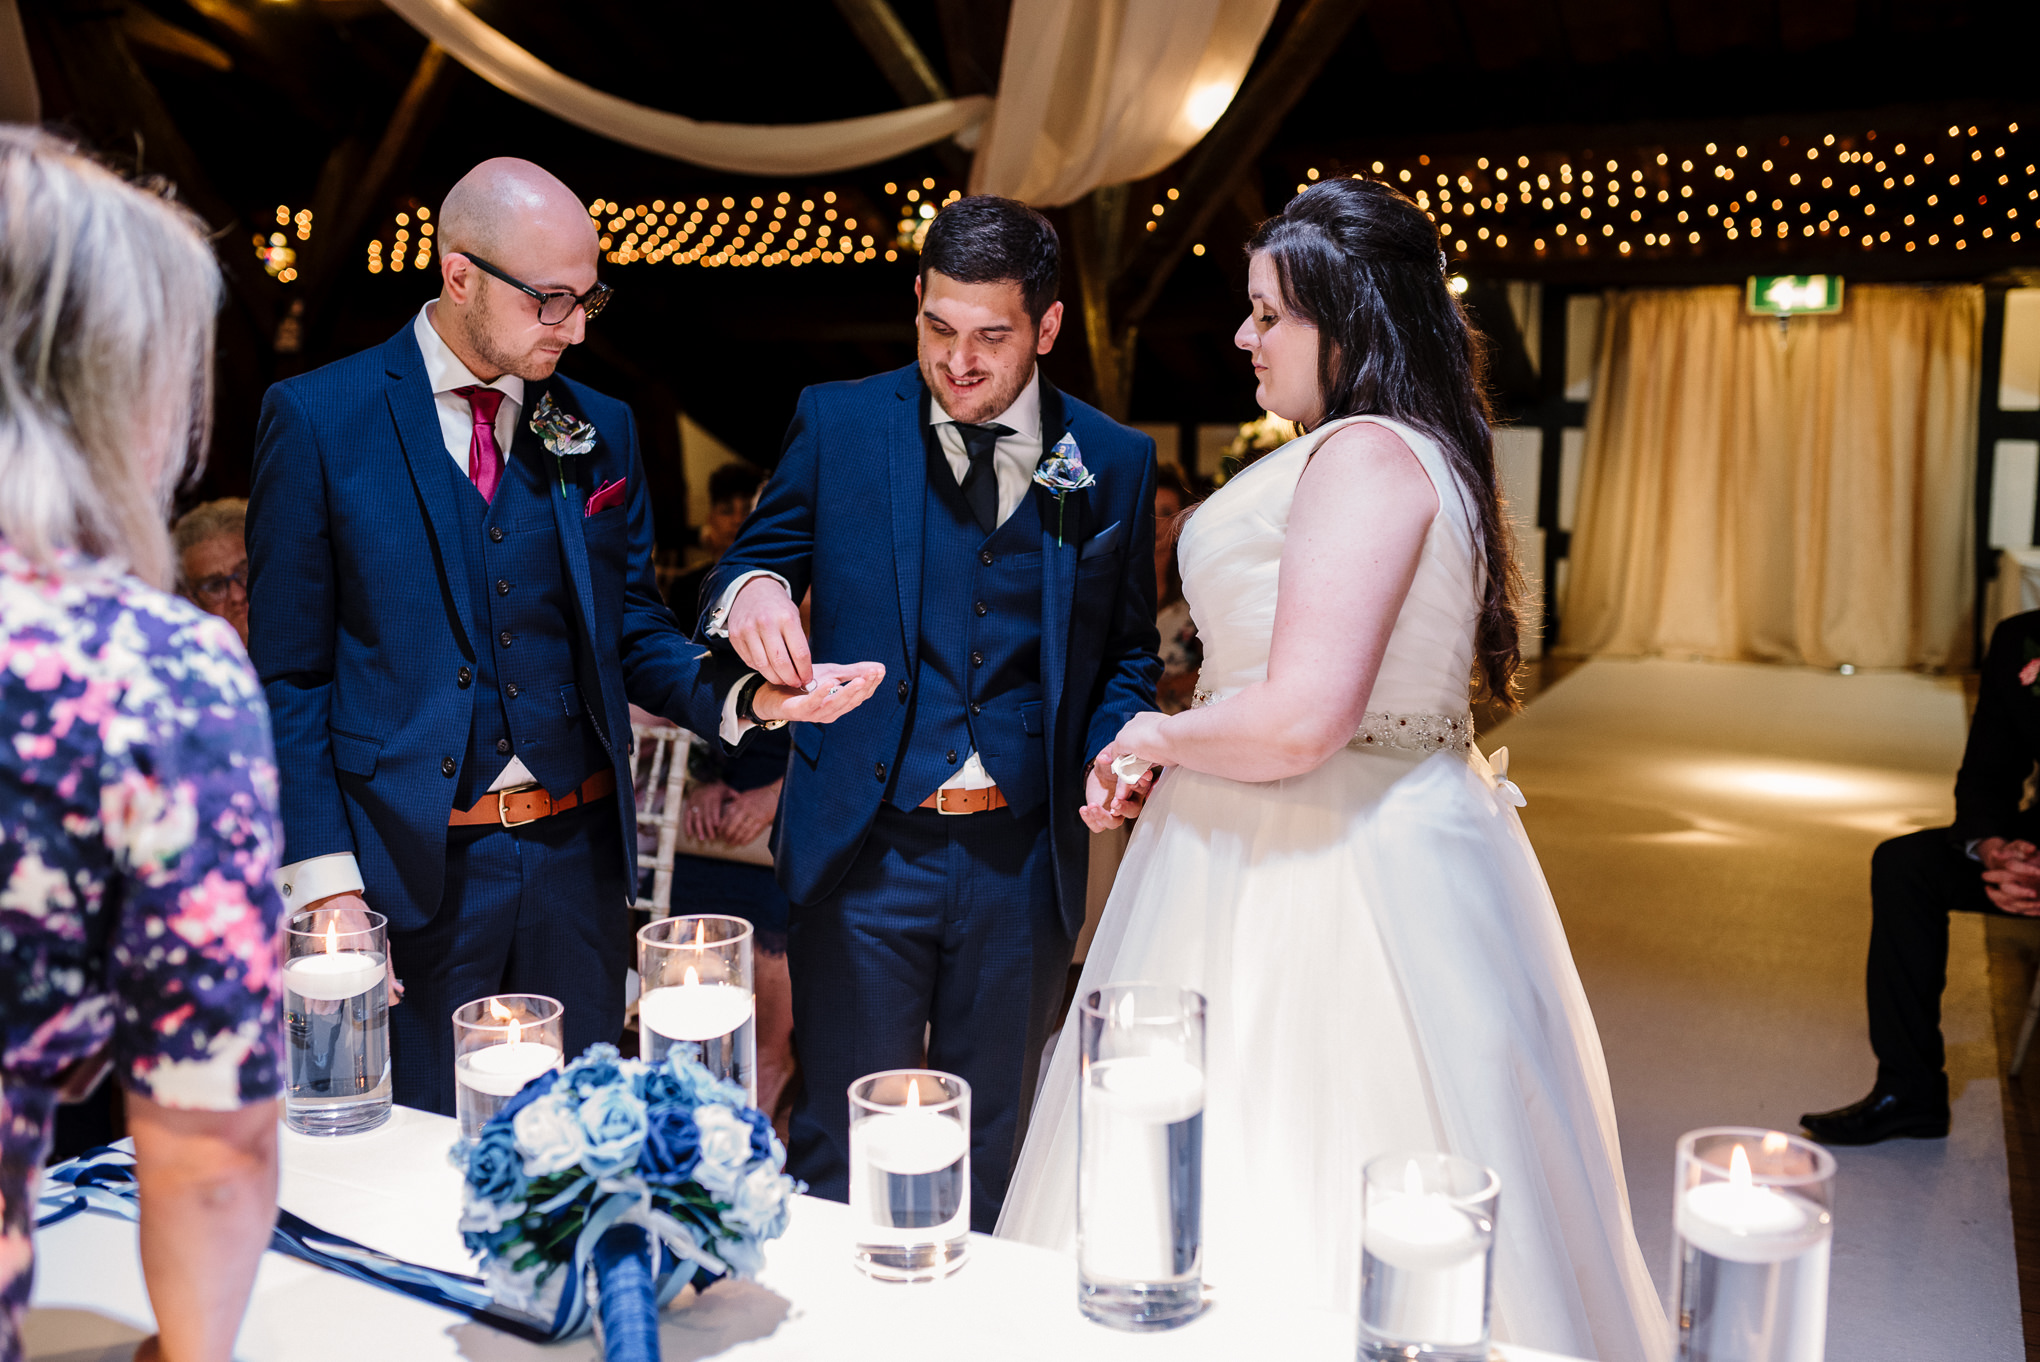 Best man passing wedding ring to the groom.